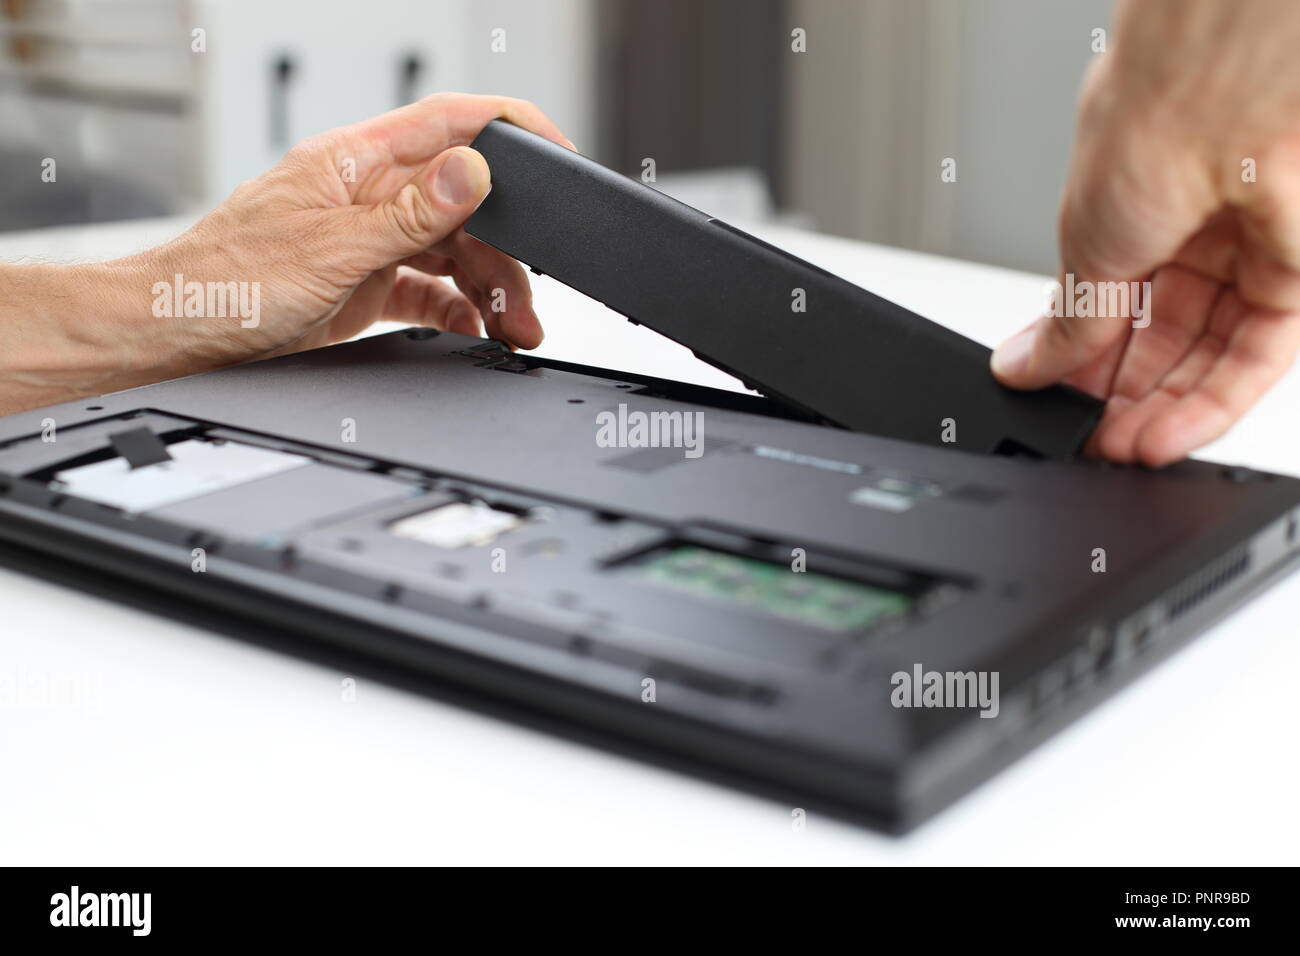 A Battery  exchange of a notebook or laptop by y professional - Stock Image